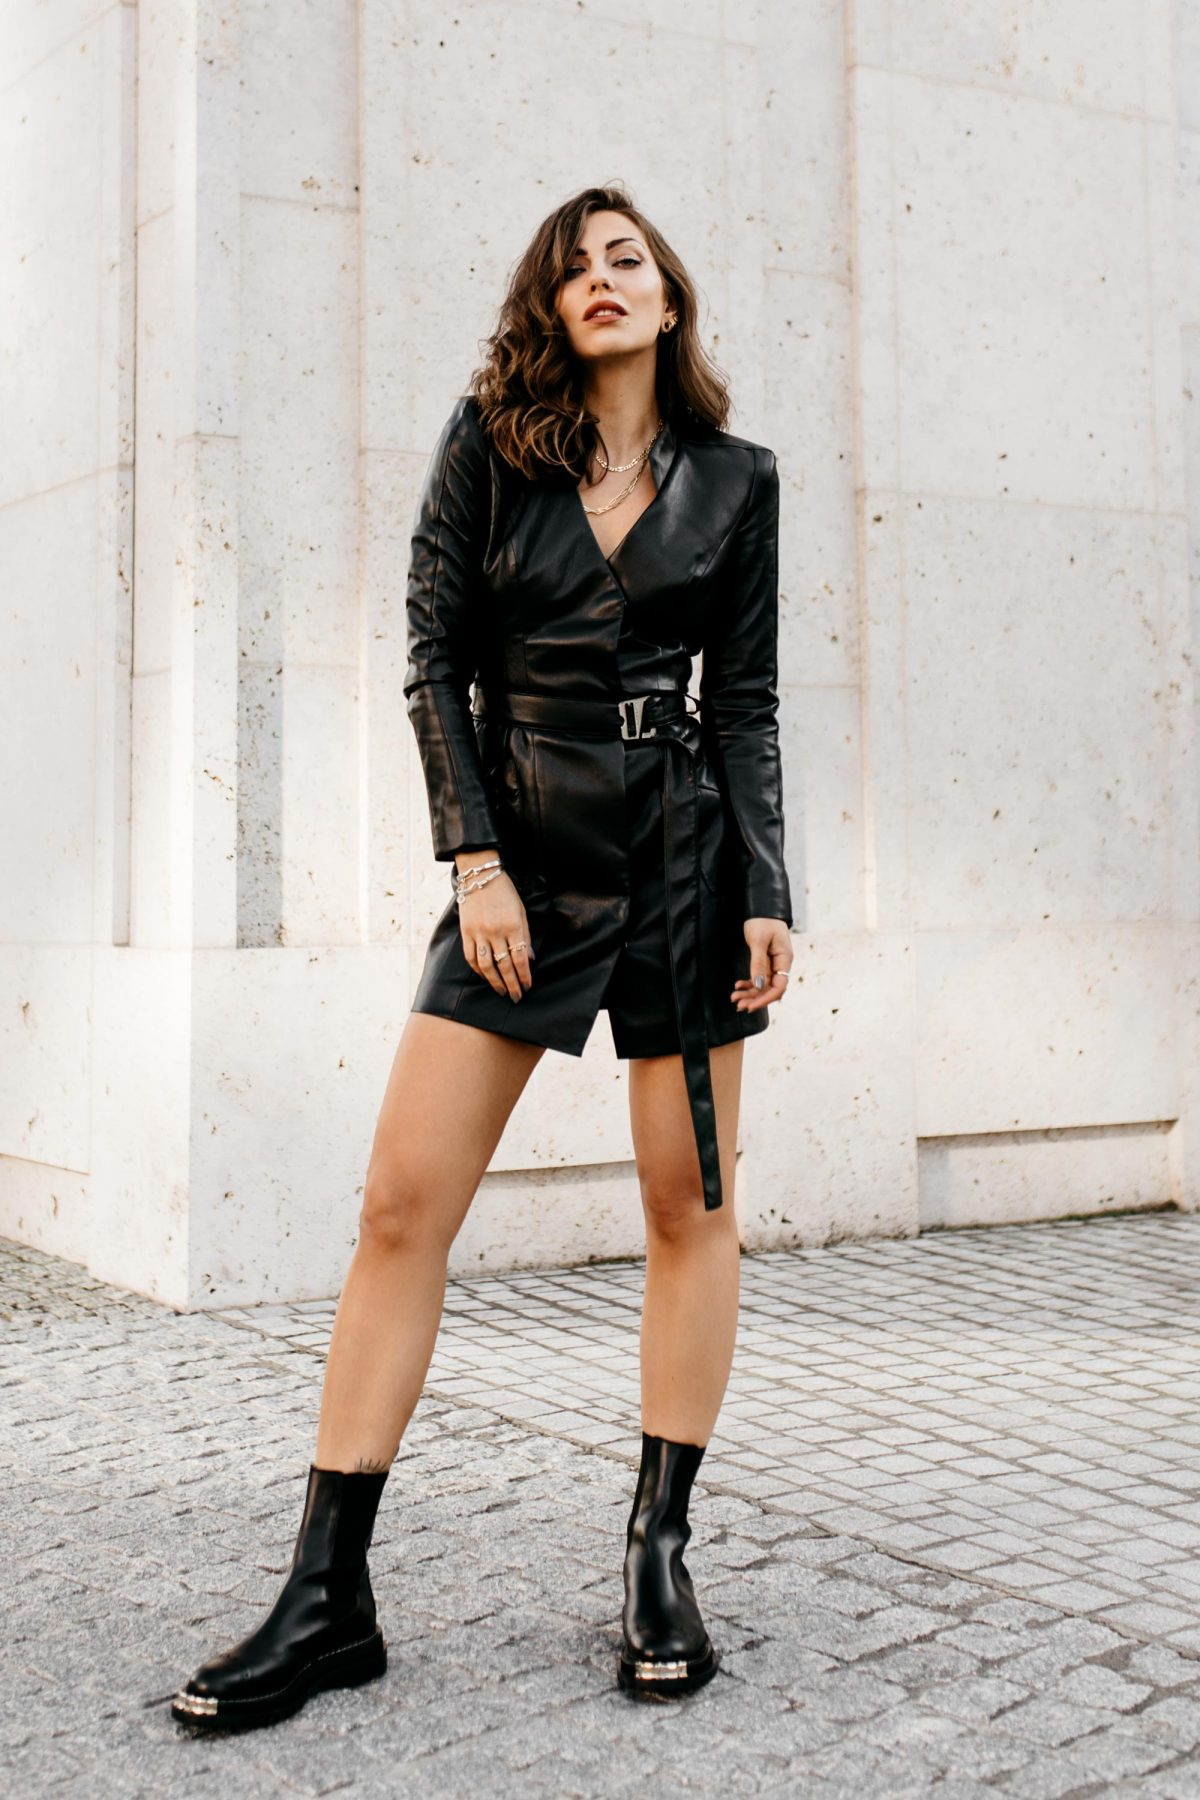 The Leather Dress